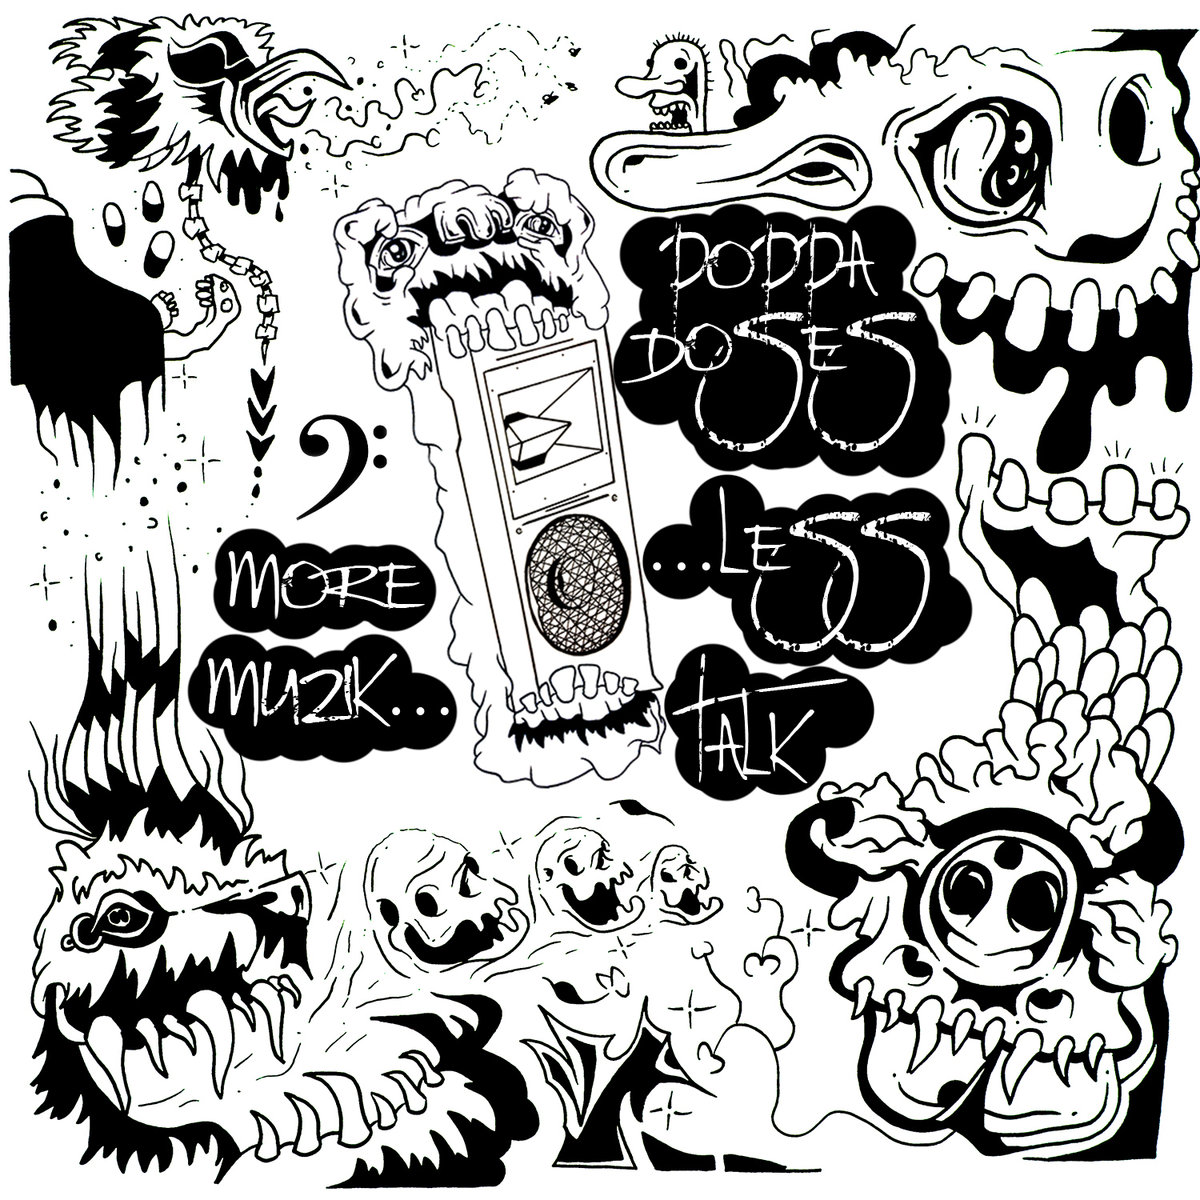 Poppa Doses - Free @ 'More Muzik Less Talk' album (electronic, dubstep)